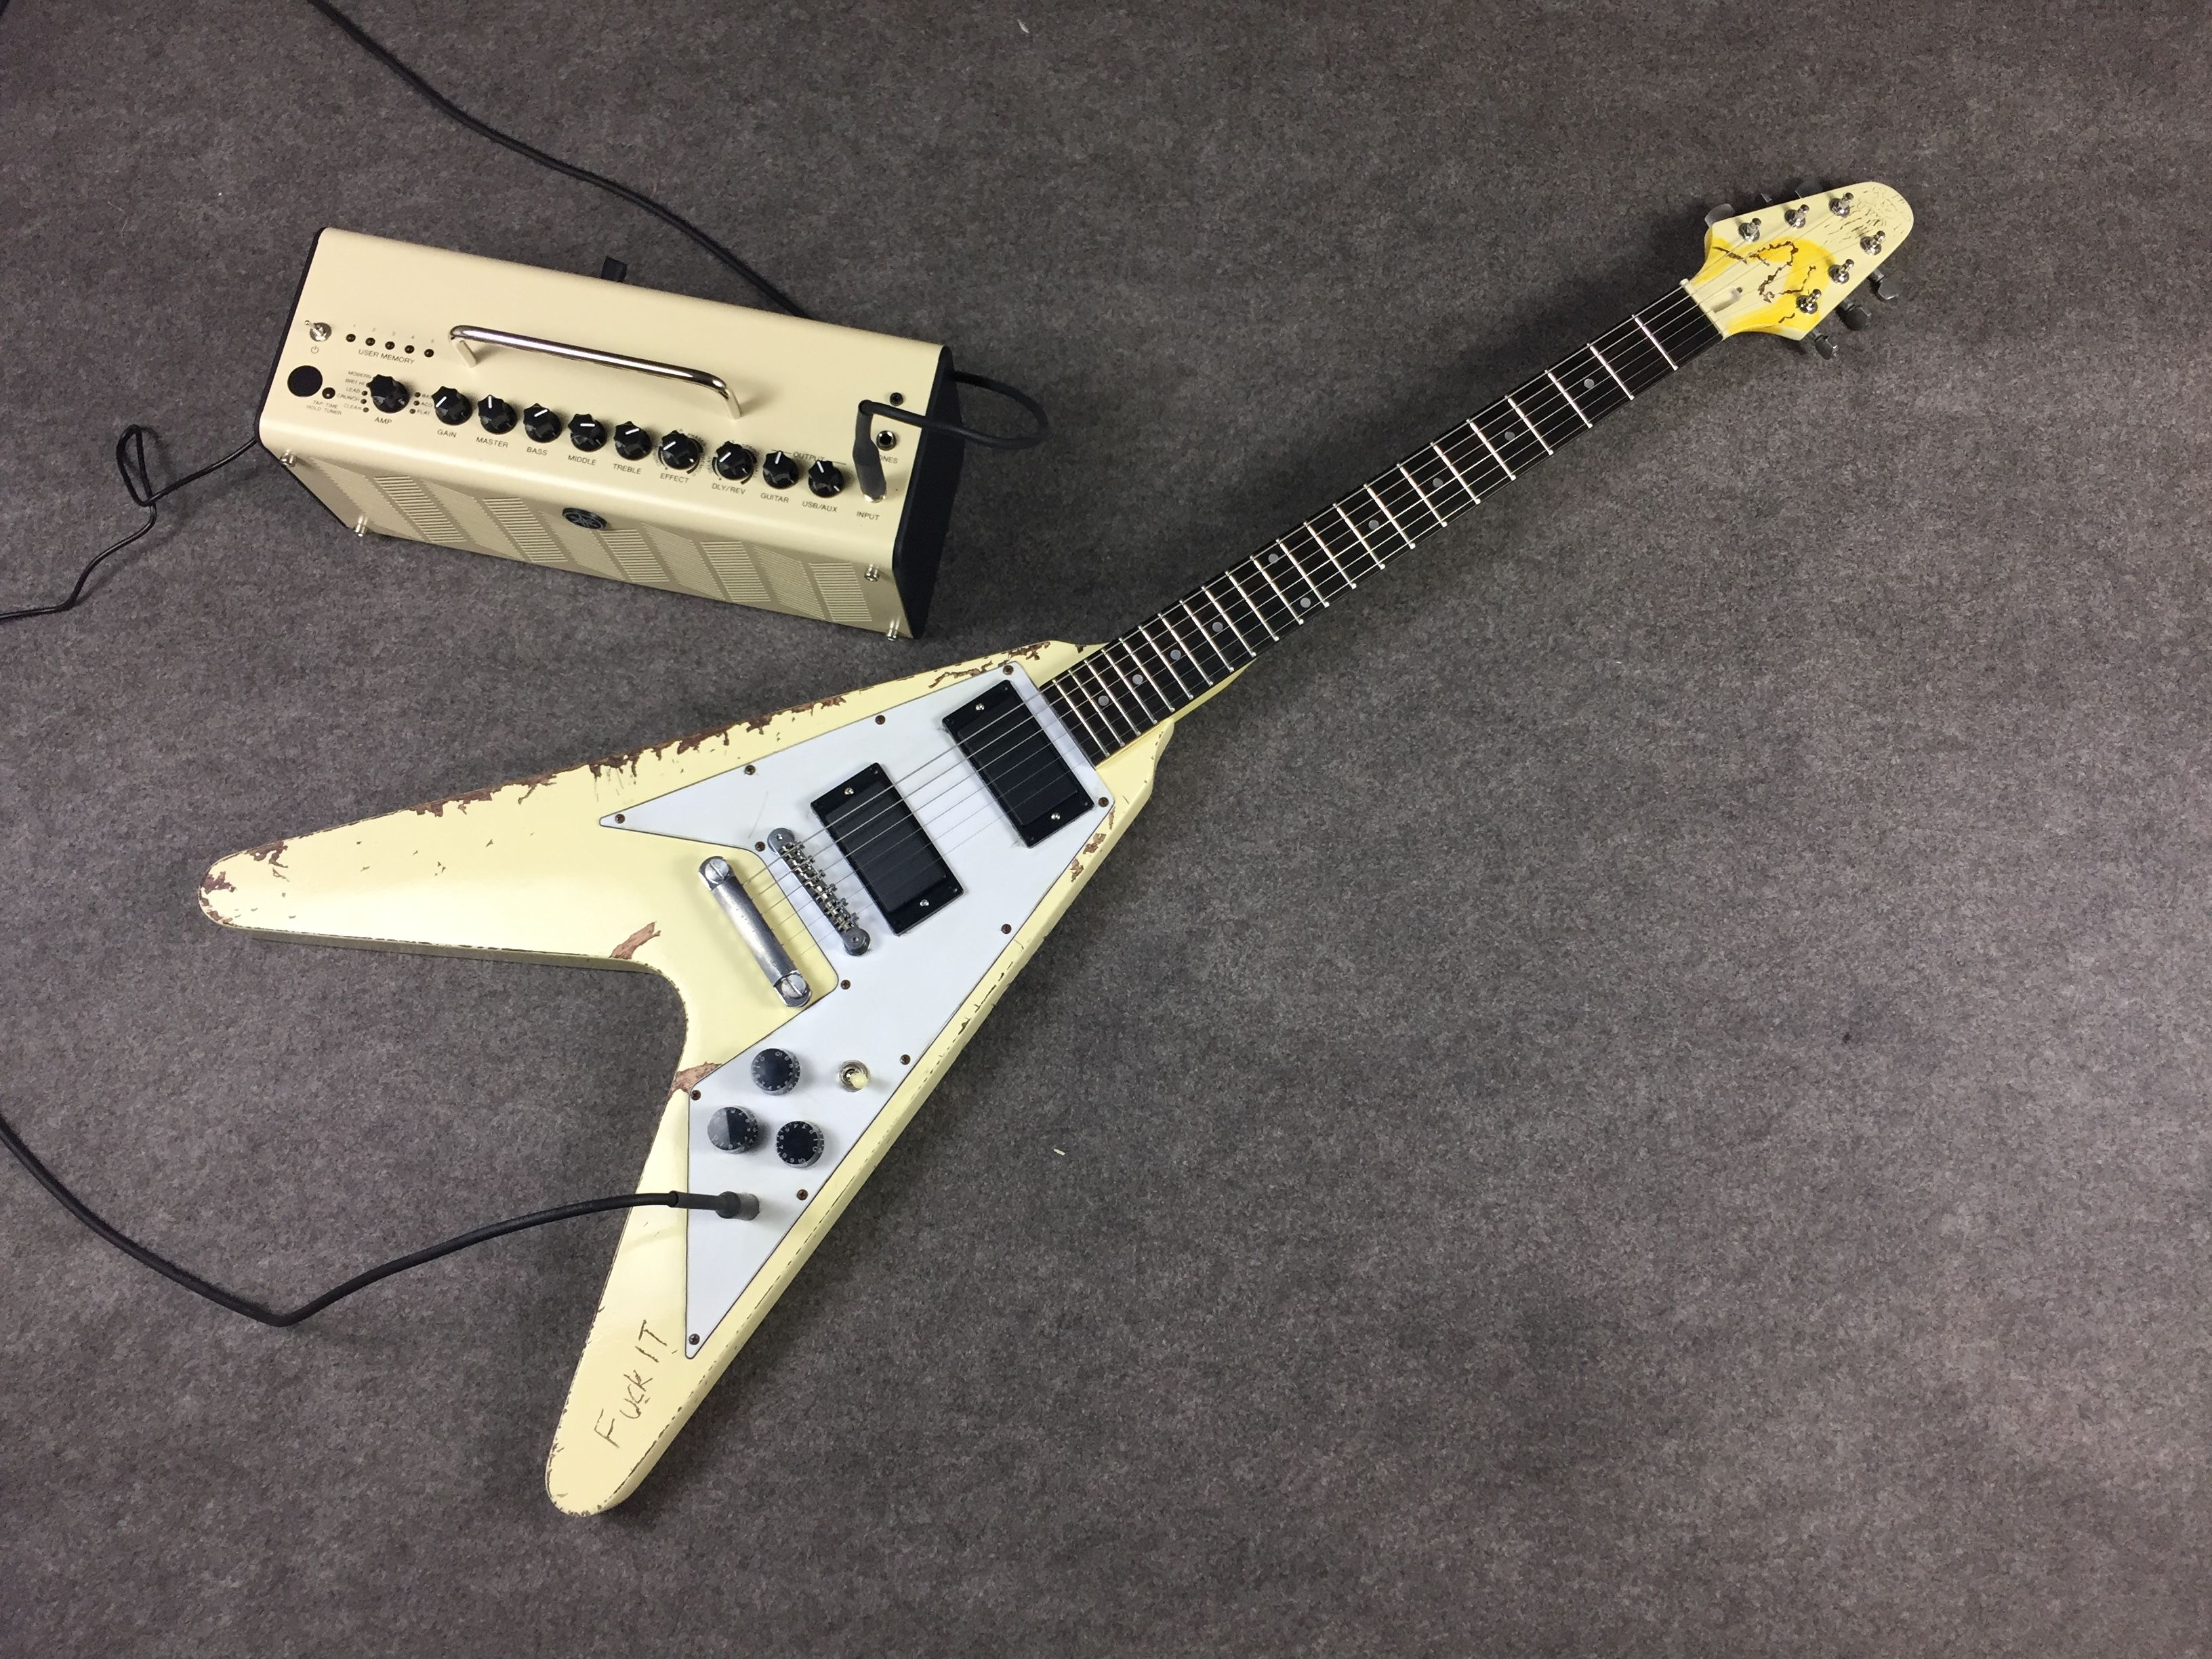 If you are interested. Please place the order here:   https://www.aliexpress.com/store/product/10S-Custom-Shop-Masterbuilt-James-Hetfield-white-Electra-Metallica-Kill-em-All-Flying-V-1981-Present/2443007_32753626269.html